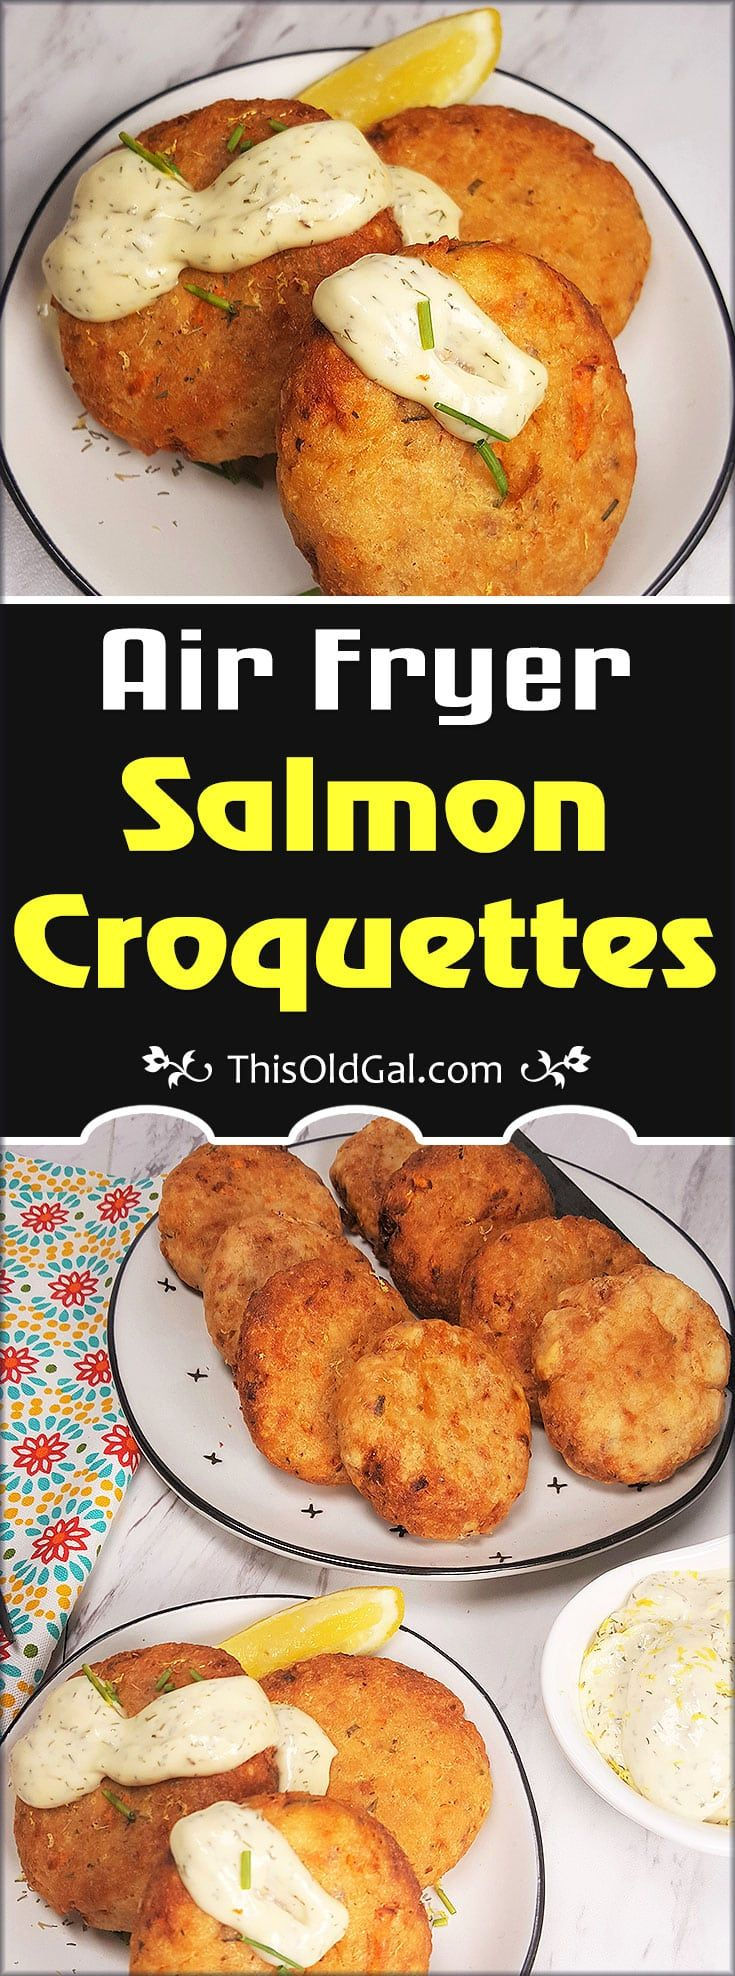 Crispy on the outside and moist and creamy on the inside, Jewish Style Air Fryer Salmon Croquettes make a perfect Friday Night meal. #airfryerrecipes